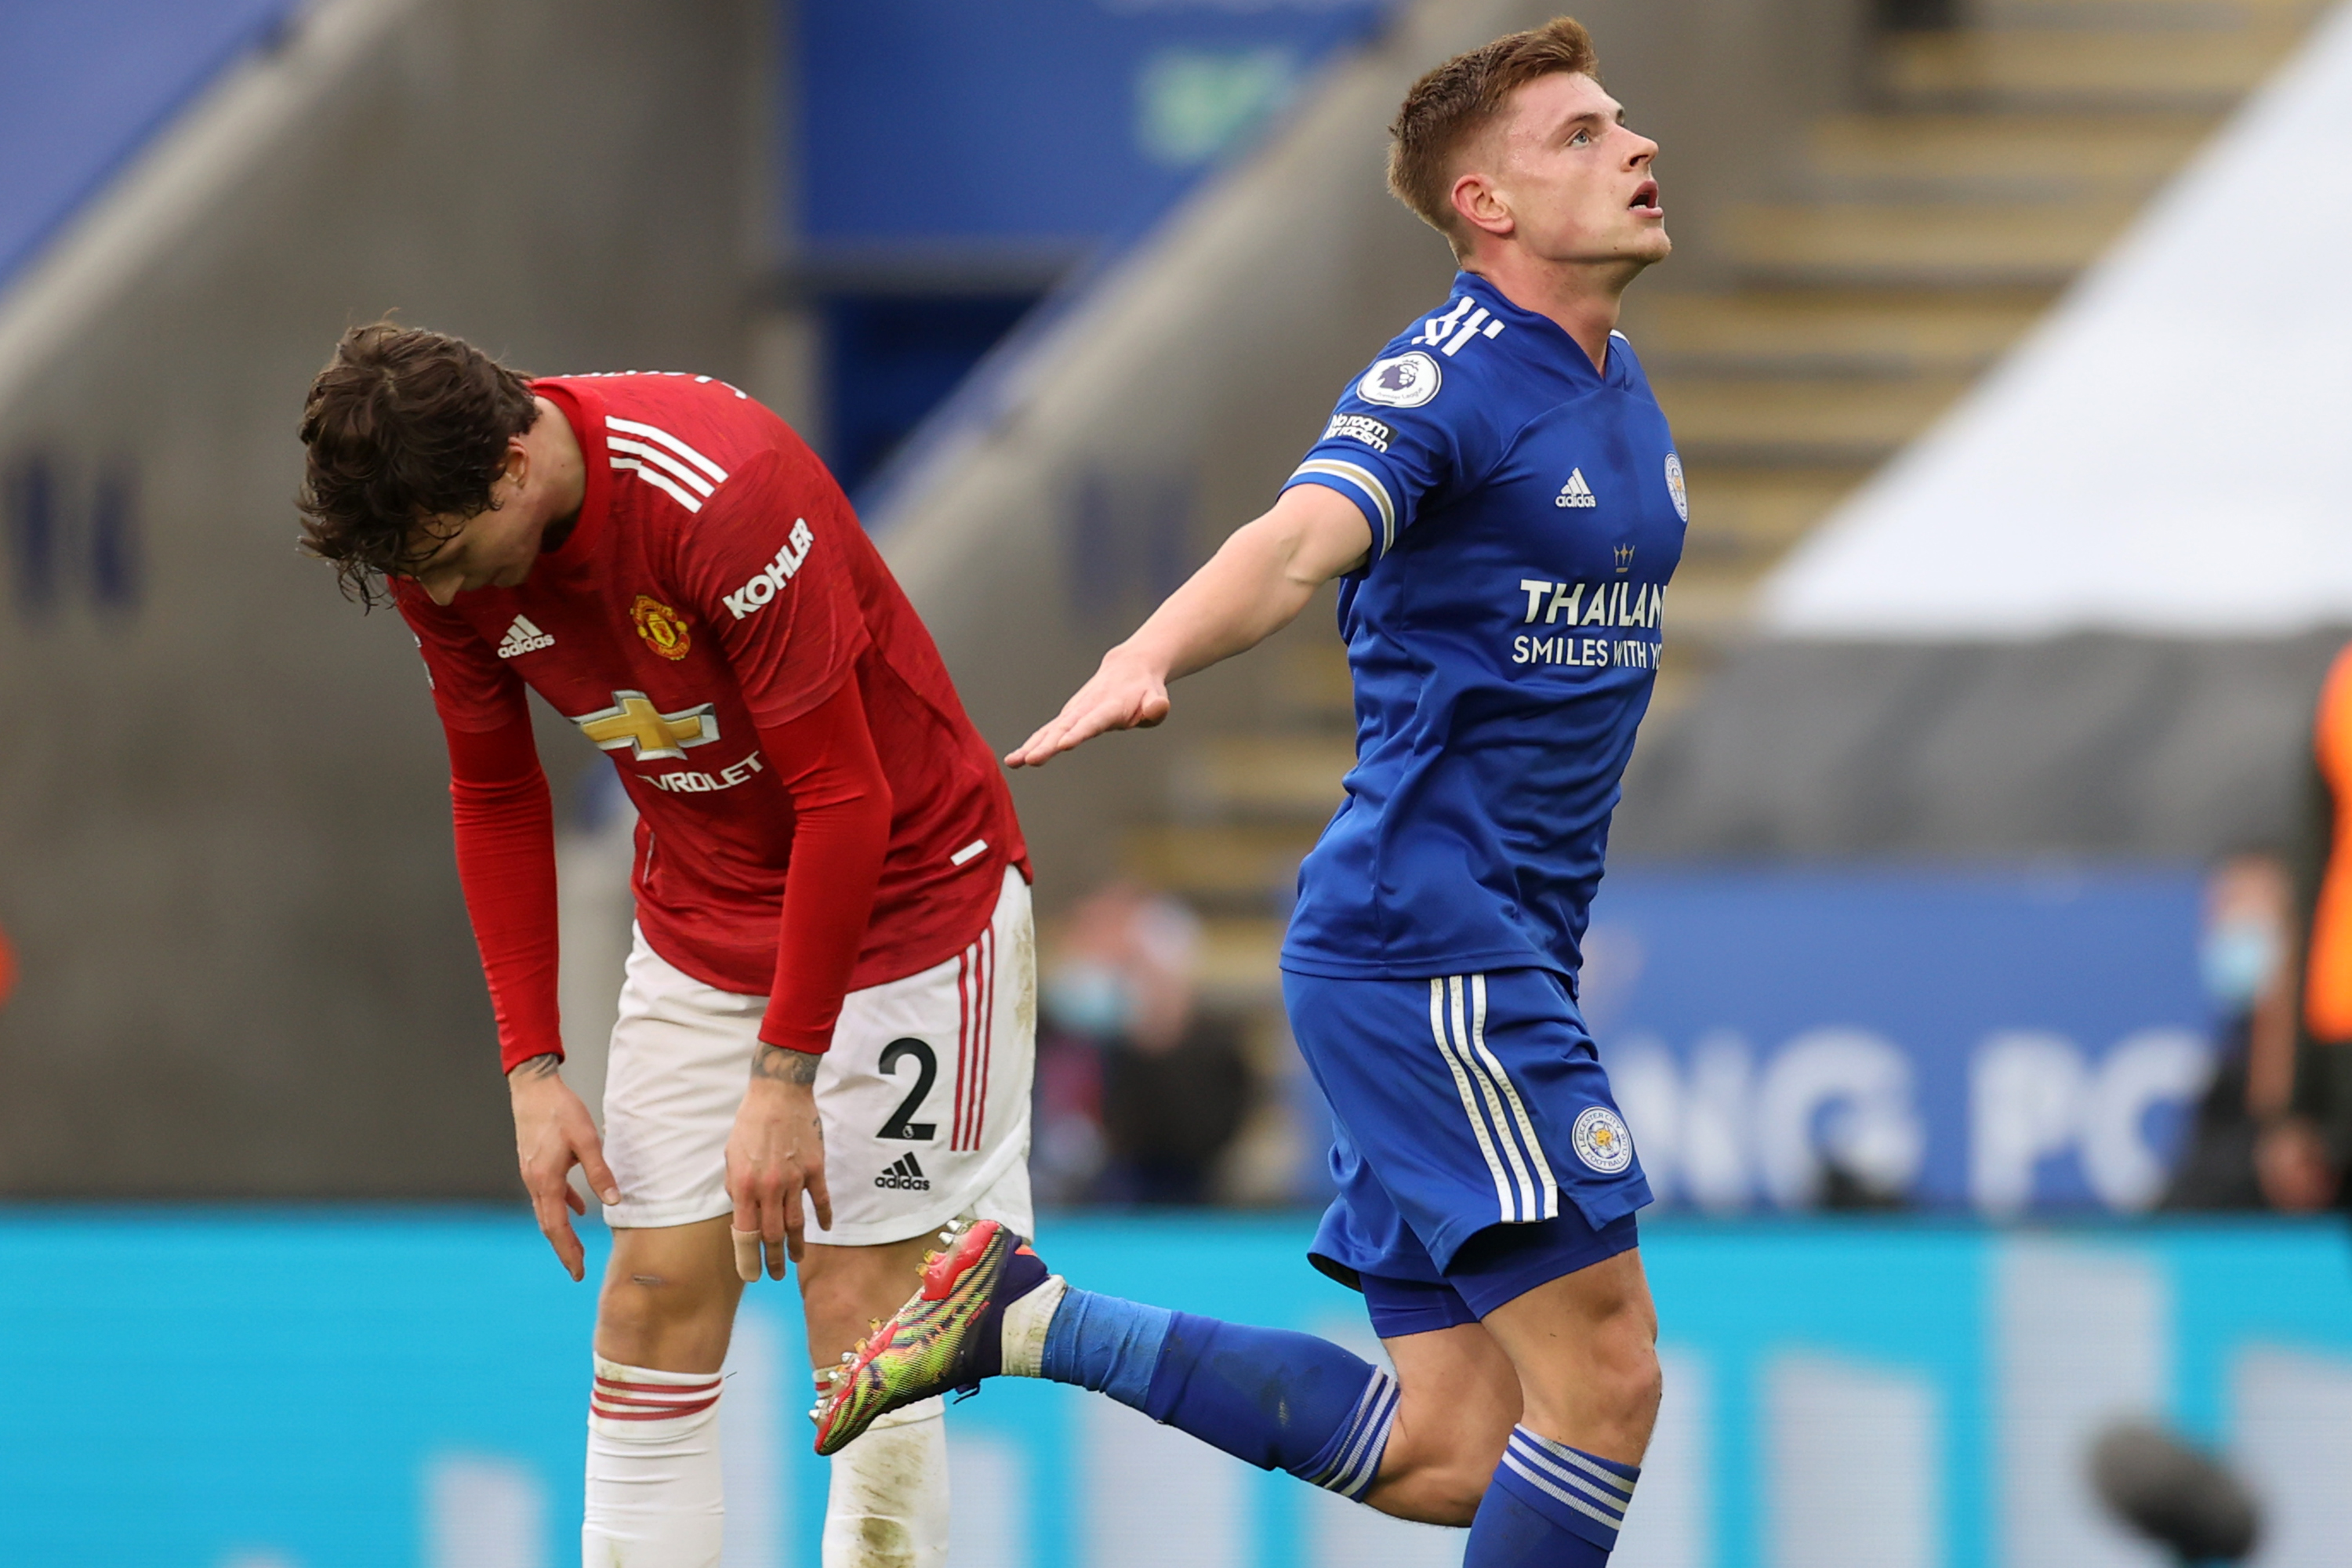 Manchester United denied record-equaling Premier League away win by late Foxes equalizer